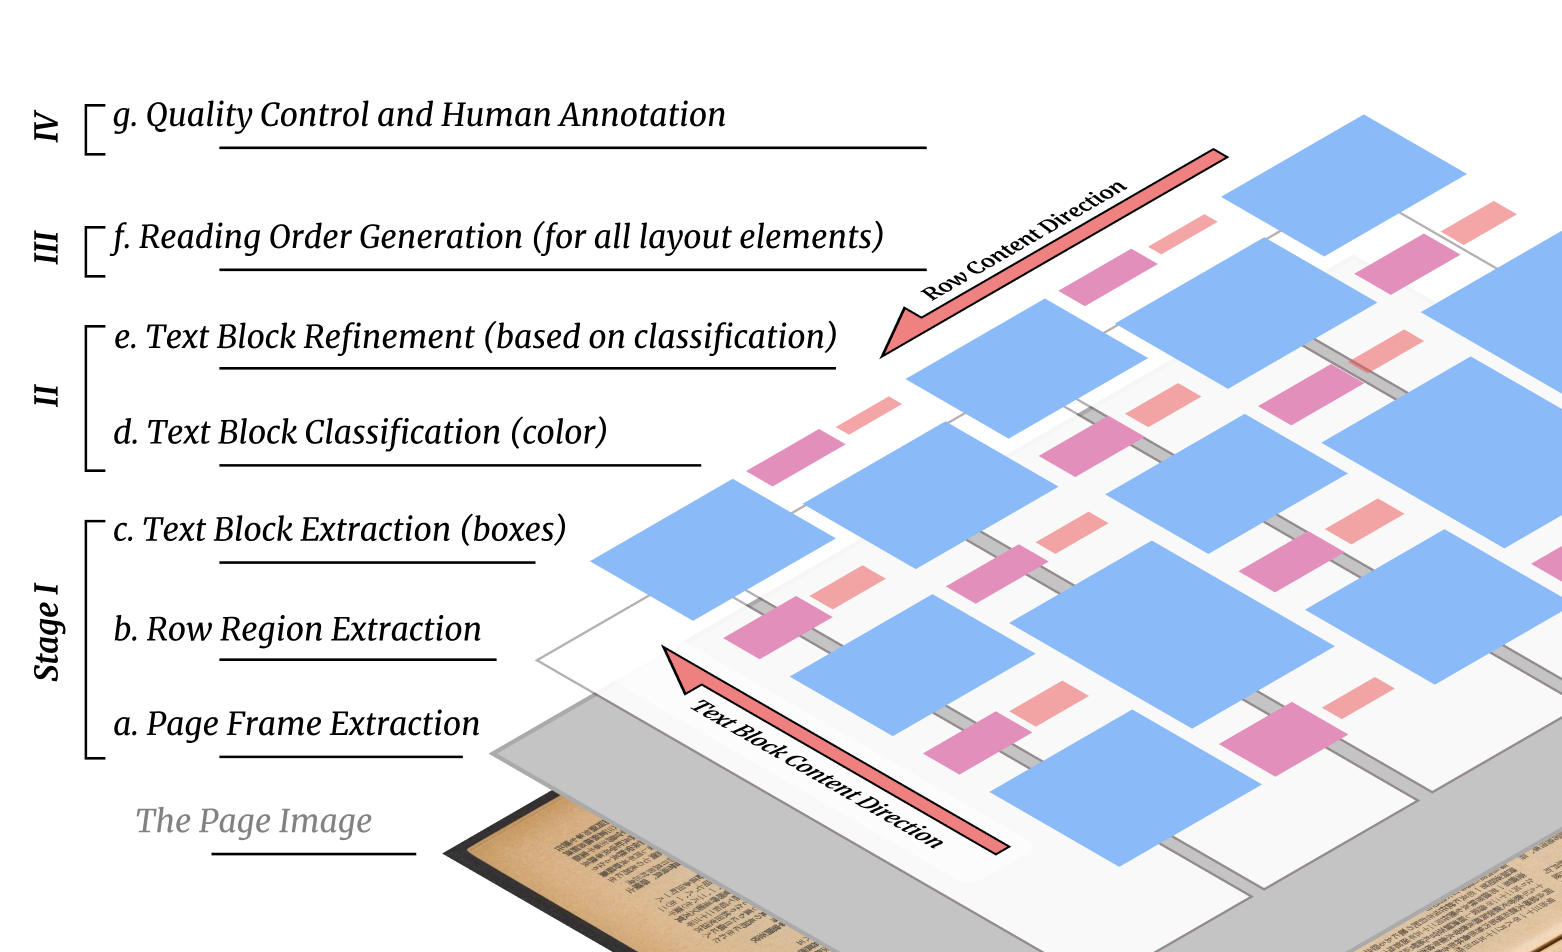 Our method detects the coordinates of the page frames, row regions, and text blocks. A text block classifier is then used to predict the block categories (indicated by the different colors in the figure), and the detections are refined accordingly. Reading orders and hierarchical dependency are generated for all layout elements. Finally human annotators check the results and correct the errors.